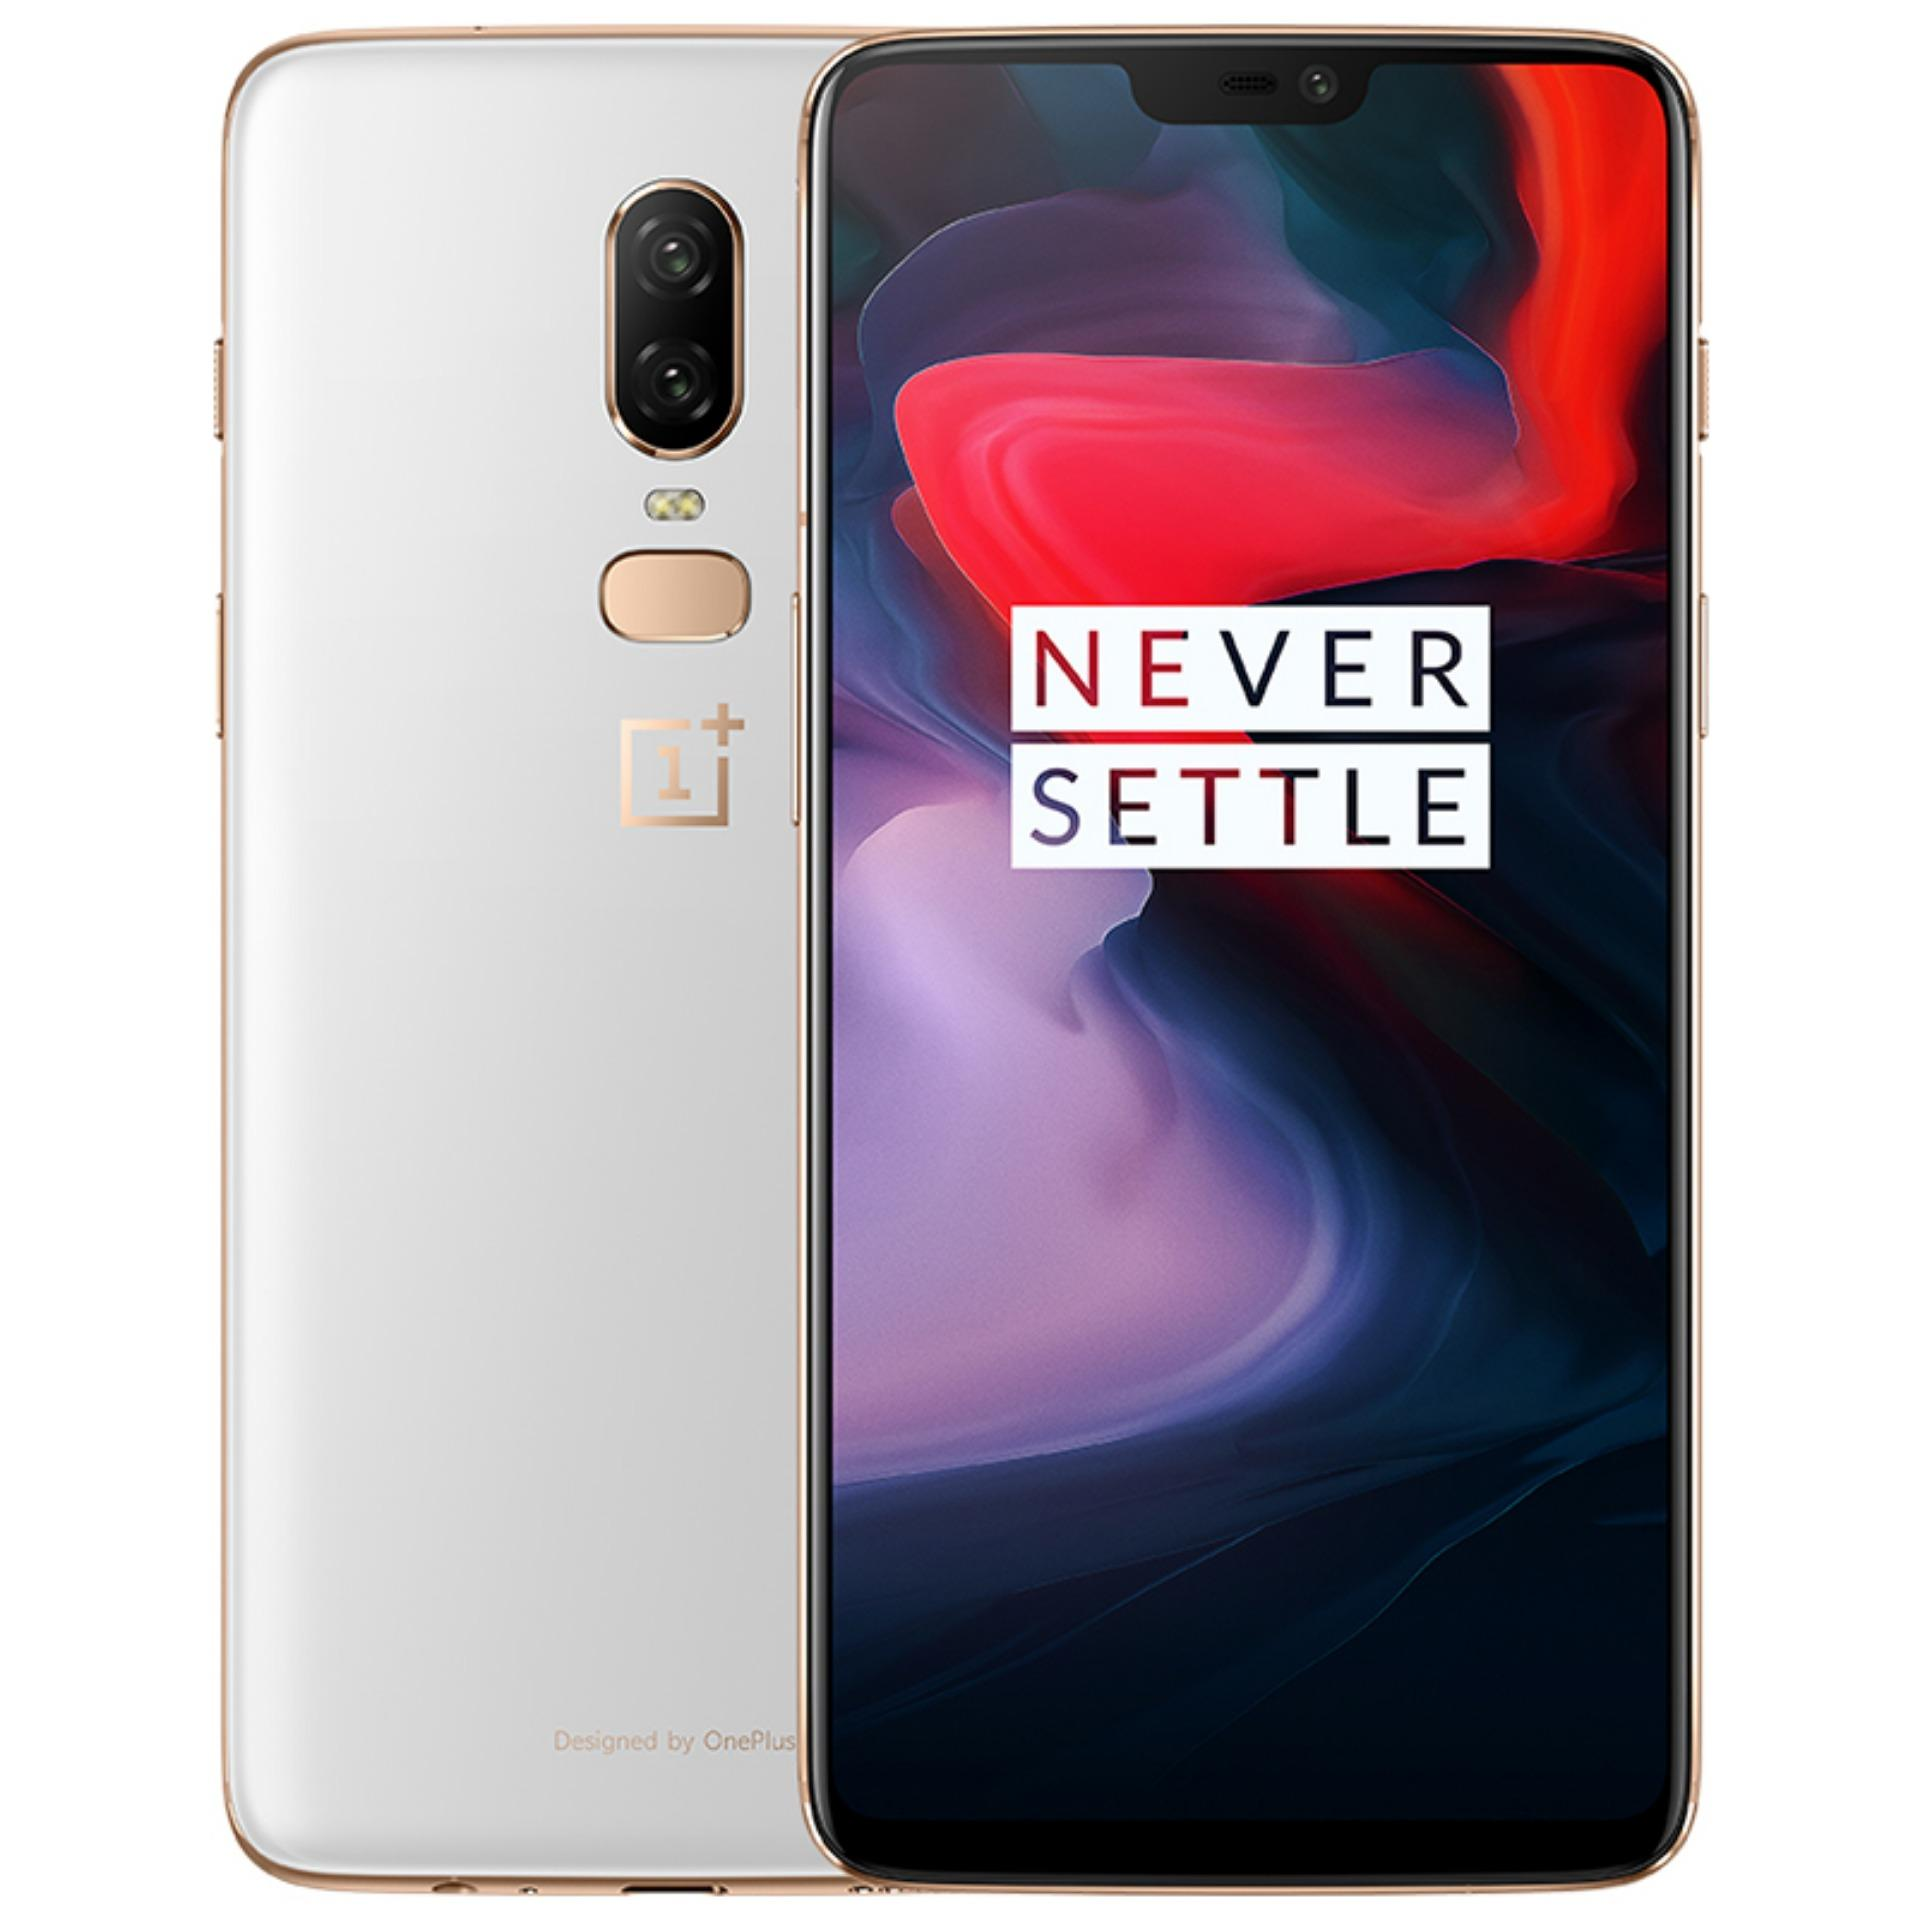 The Cheapest Oneplus 6 Silk White 8Gb Ram 128Gb Rom Brand New Local Set Online